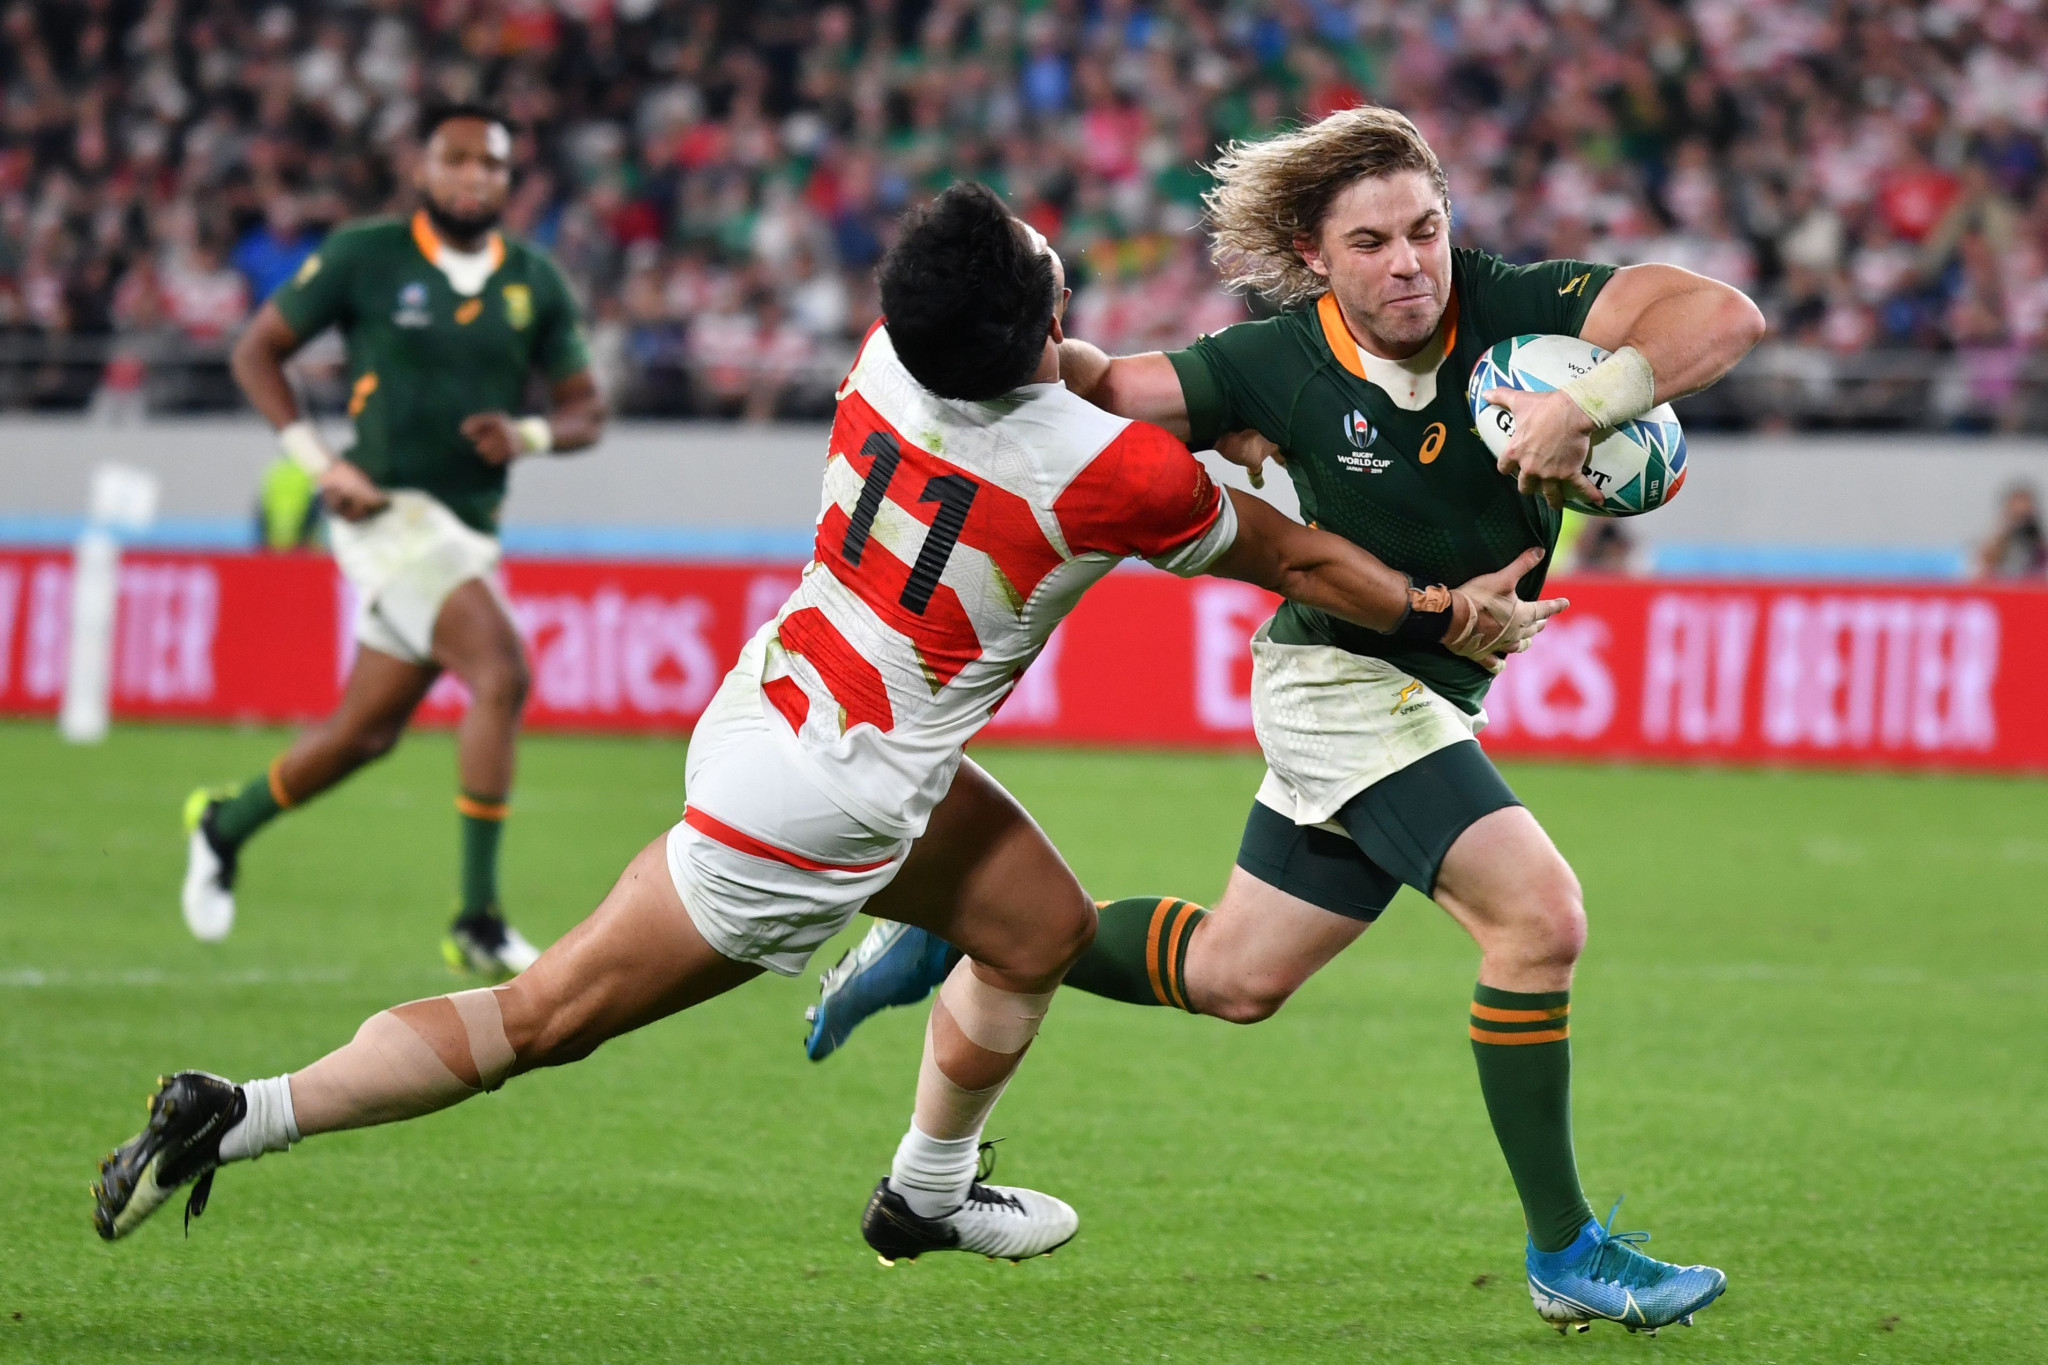 South Africa defeated Japan to reach the Rugby World Cup semi-final ©Getty Images